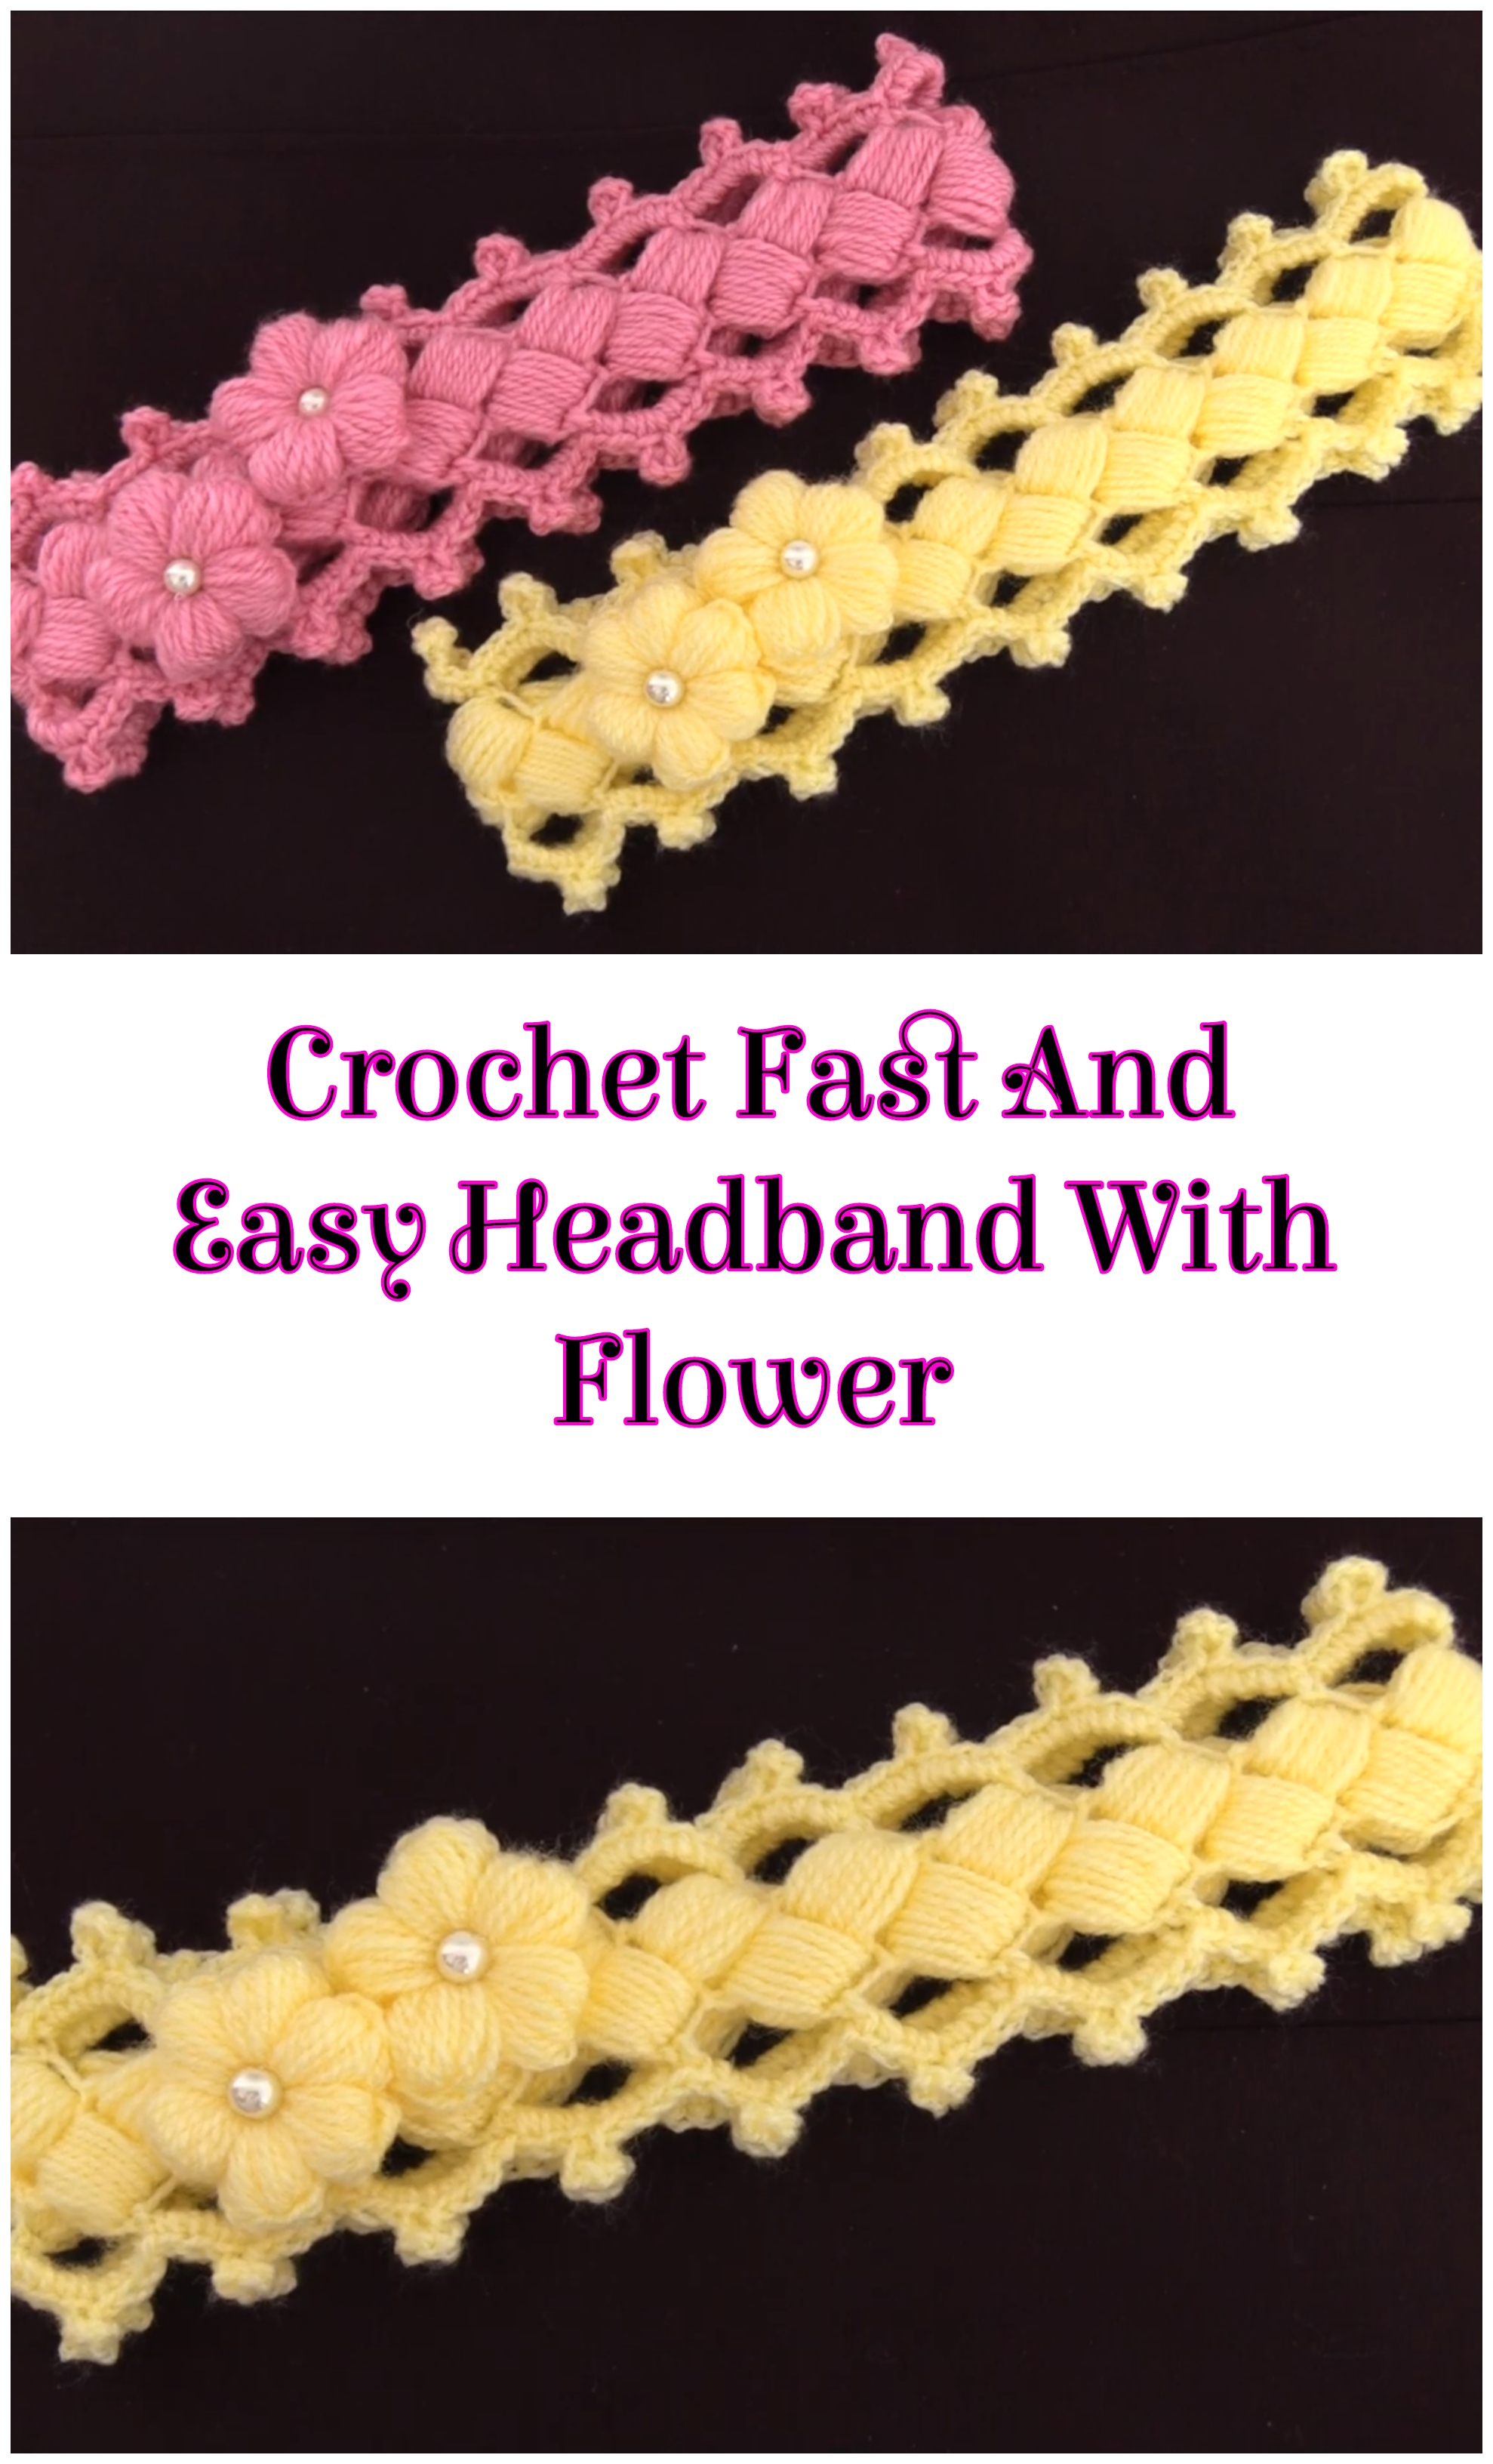 Crochet Fast And Easy Headband With Flower